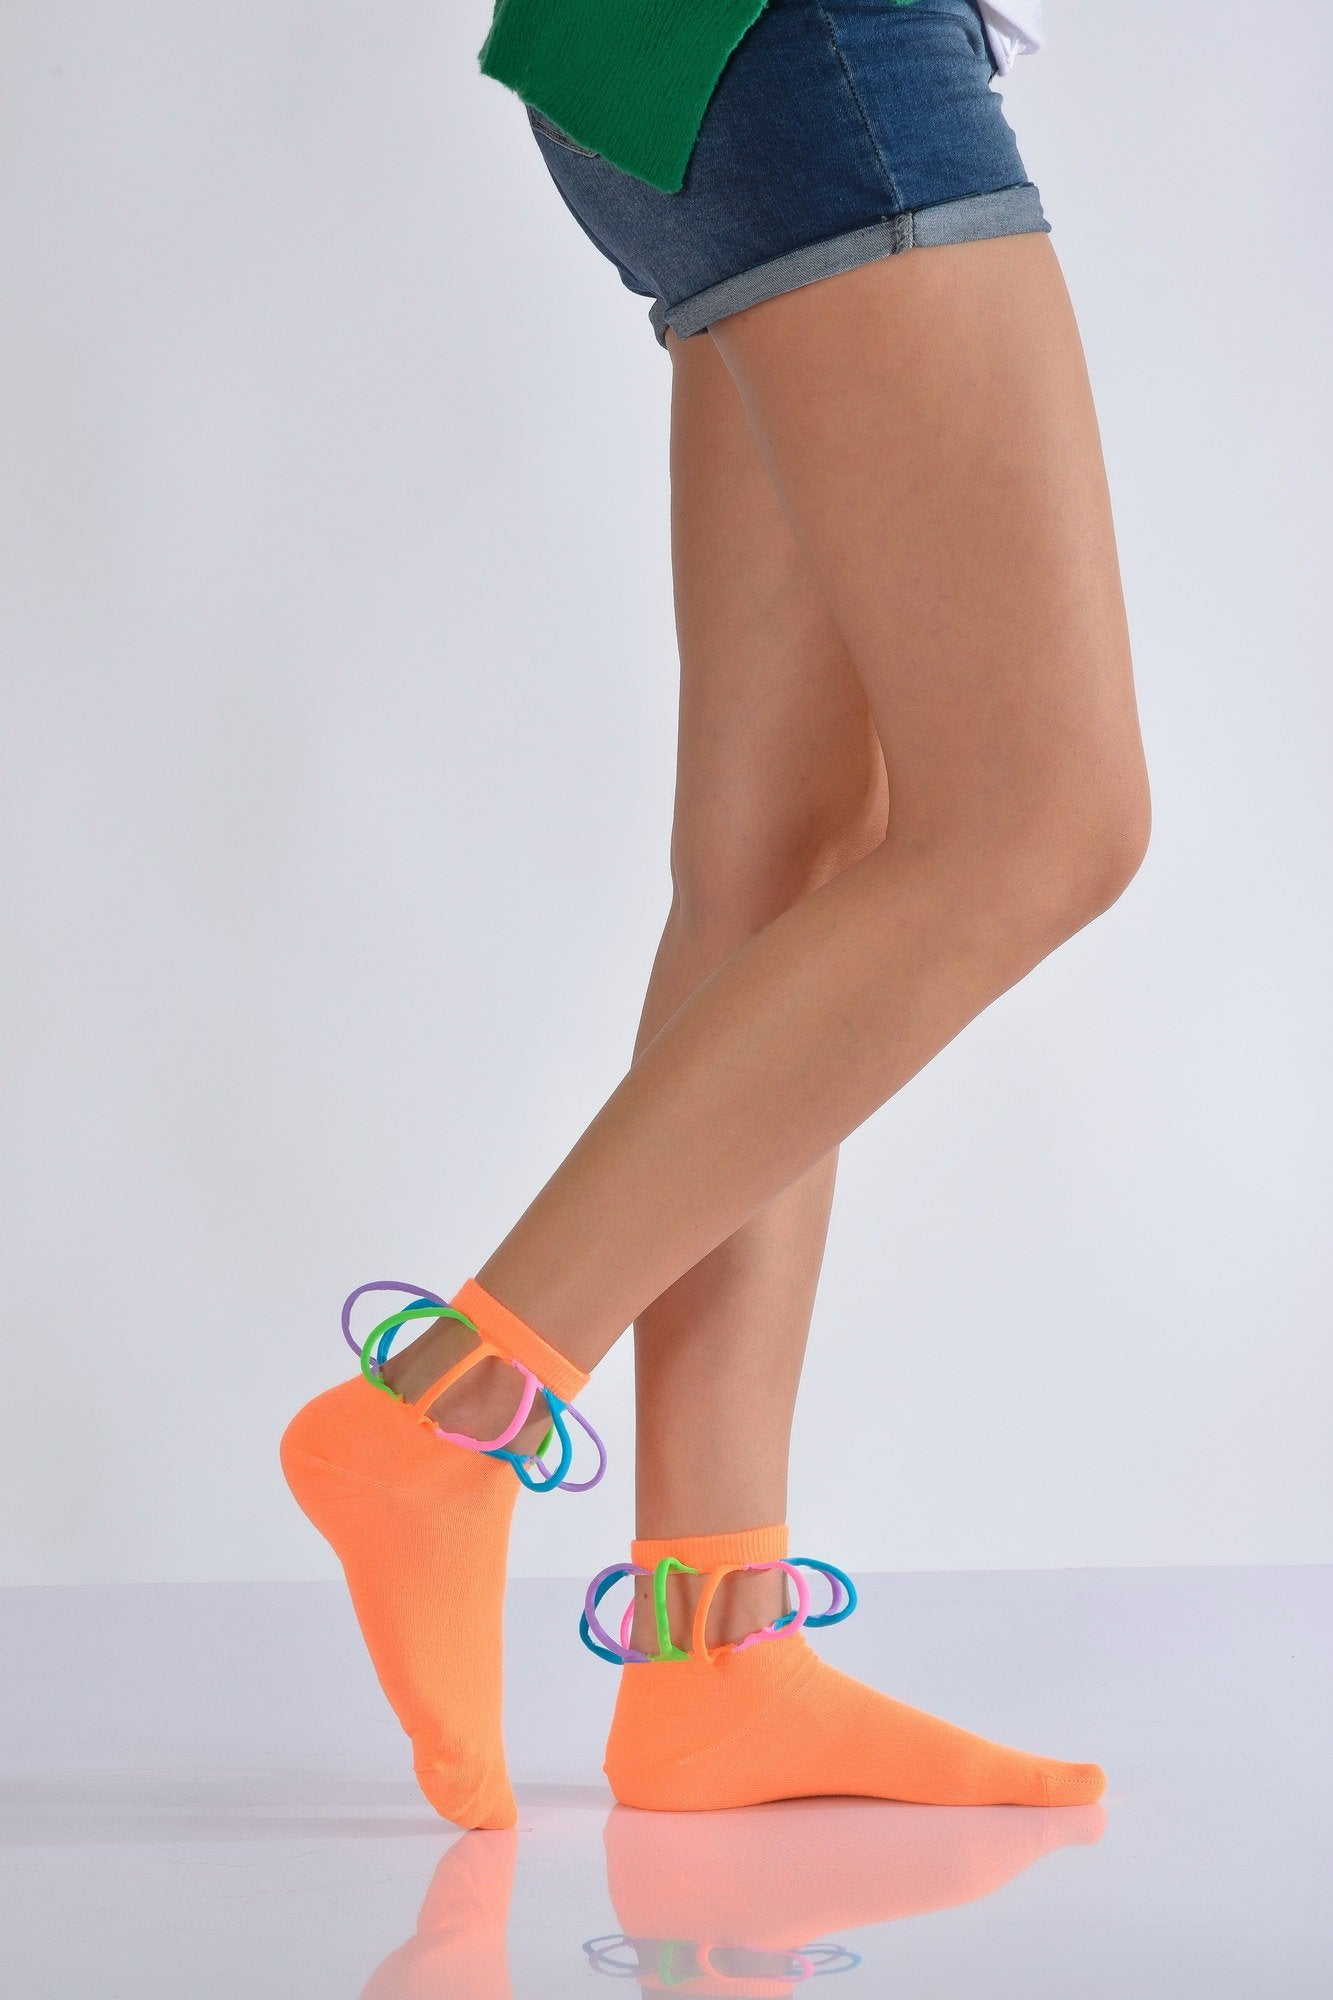 Women's Special Design Neon Orange Socks- 3 Pairs